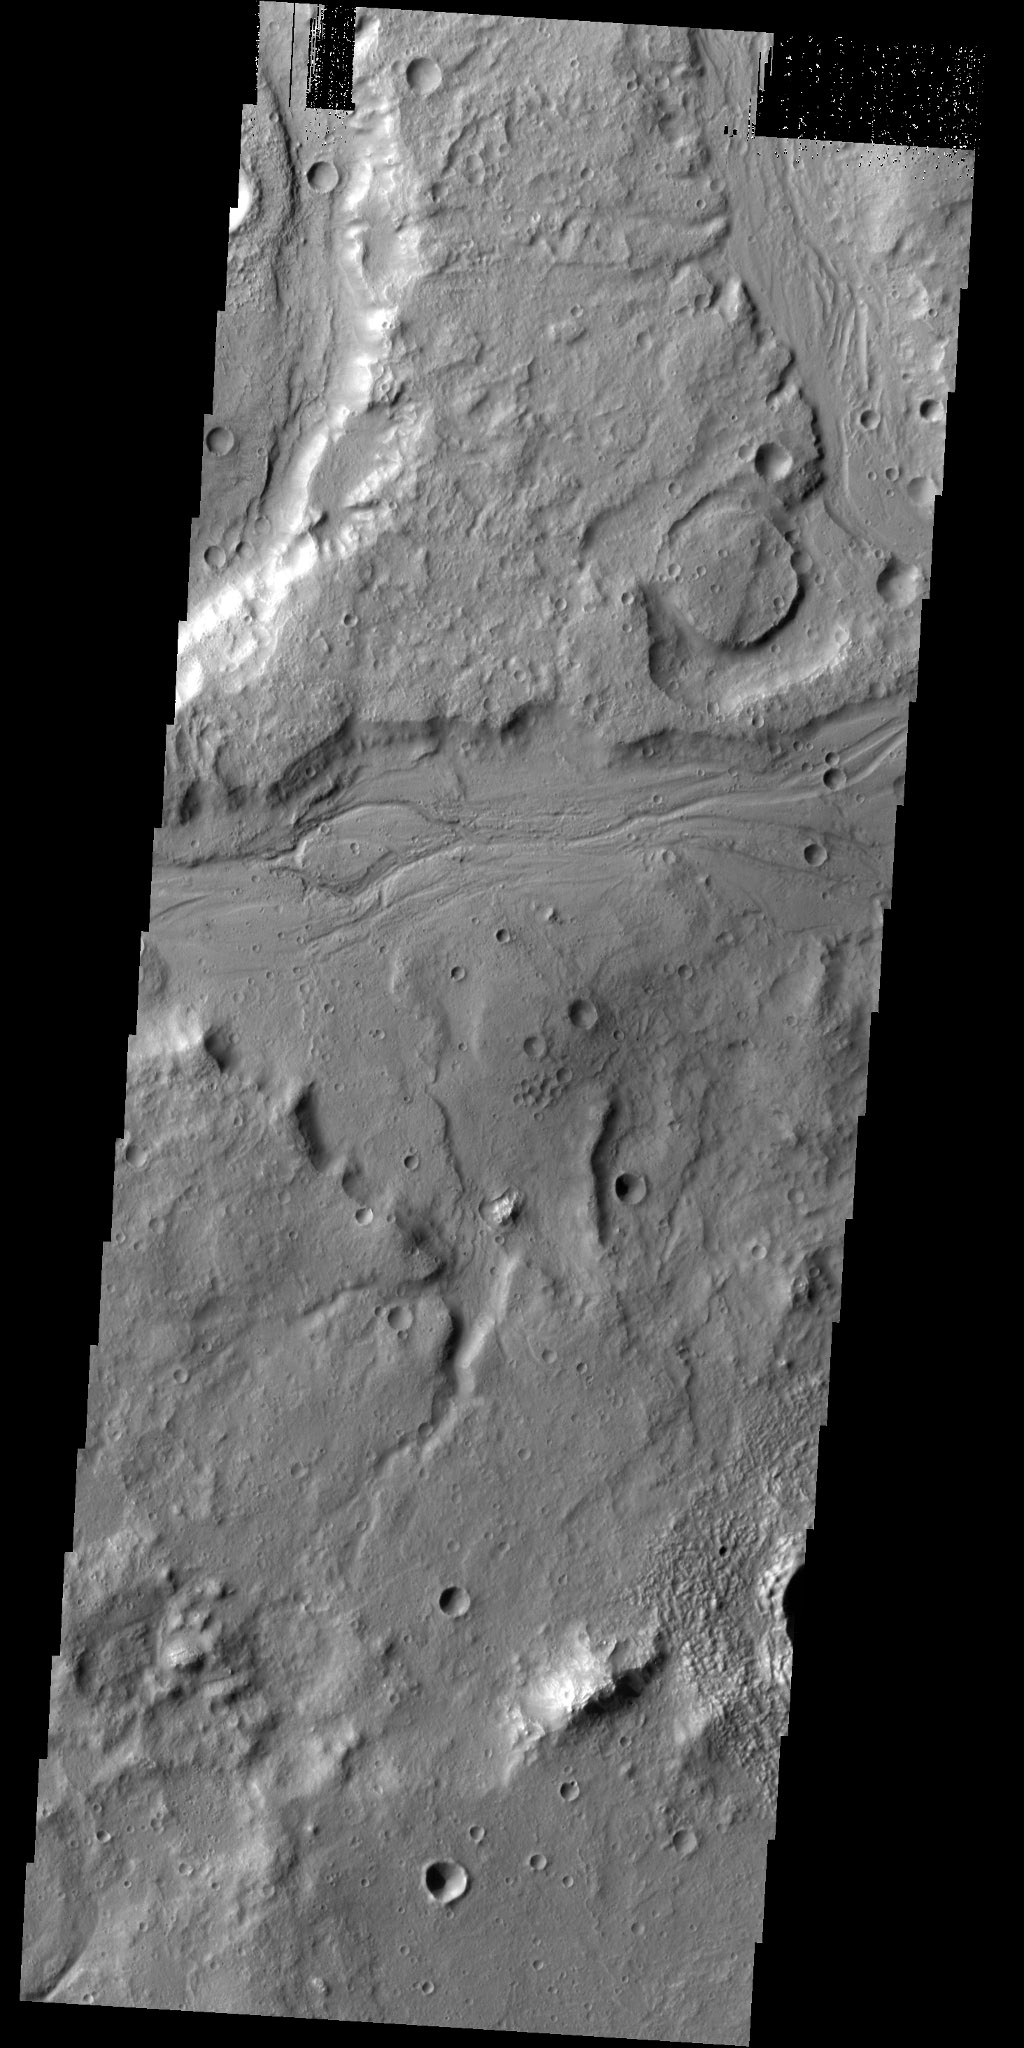 Numerous unnamed channels seen in this image captured by NASA's 2001 Mars Odyssey spacecraft are located on the eastern margin of Tempe Terra.